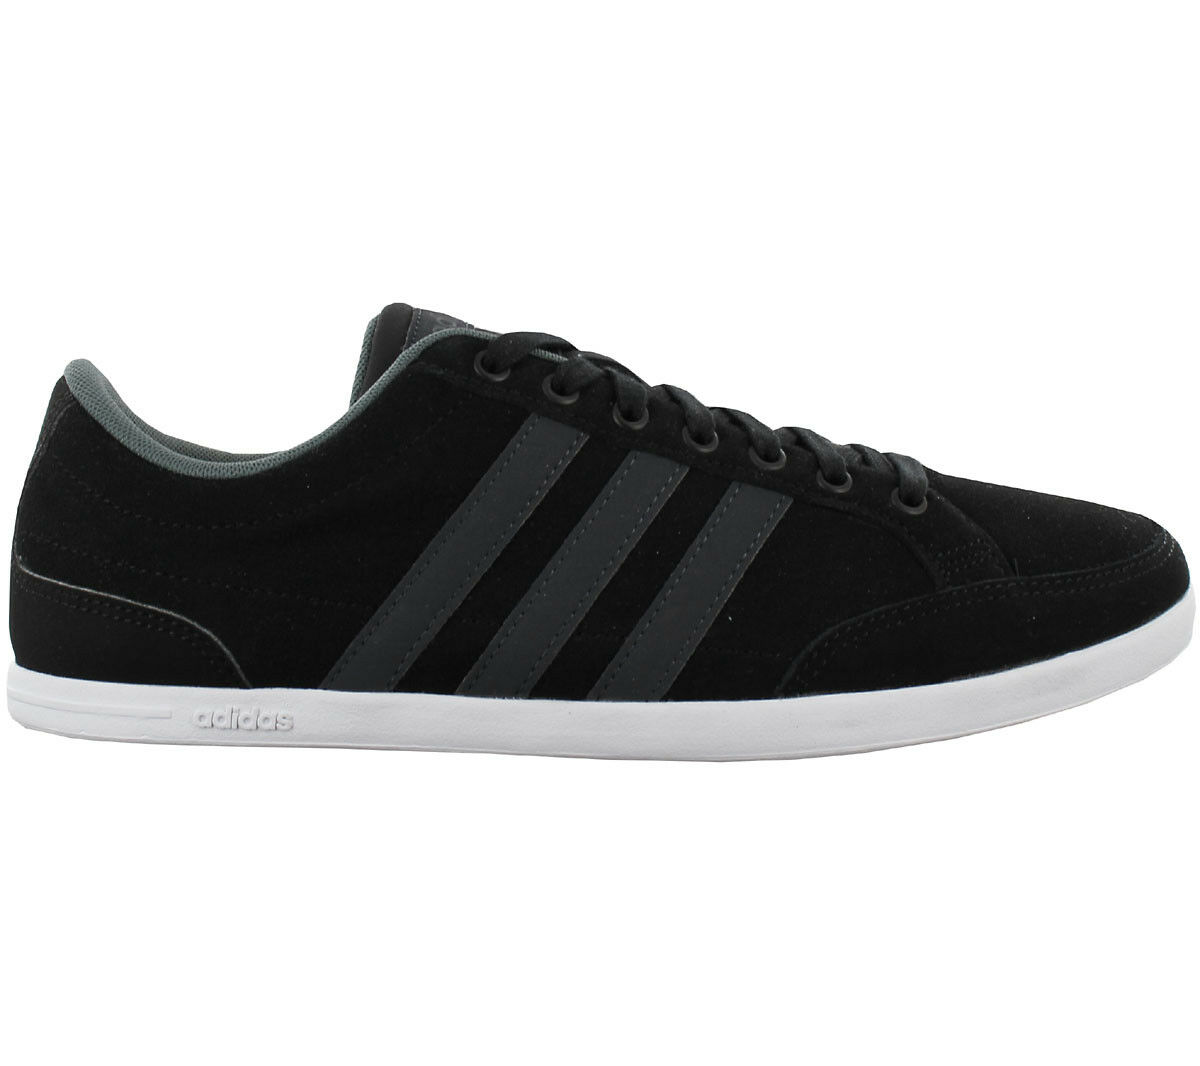 Adidas Caflaire Low Baskets / Chaussures Homme Baskets Baskets Baskets Loisirs Noir AW4705 | Durable En Usage